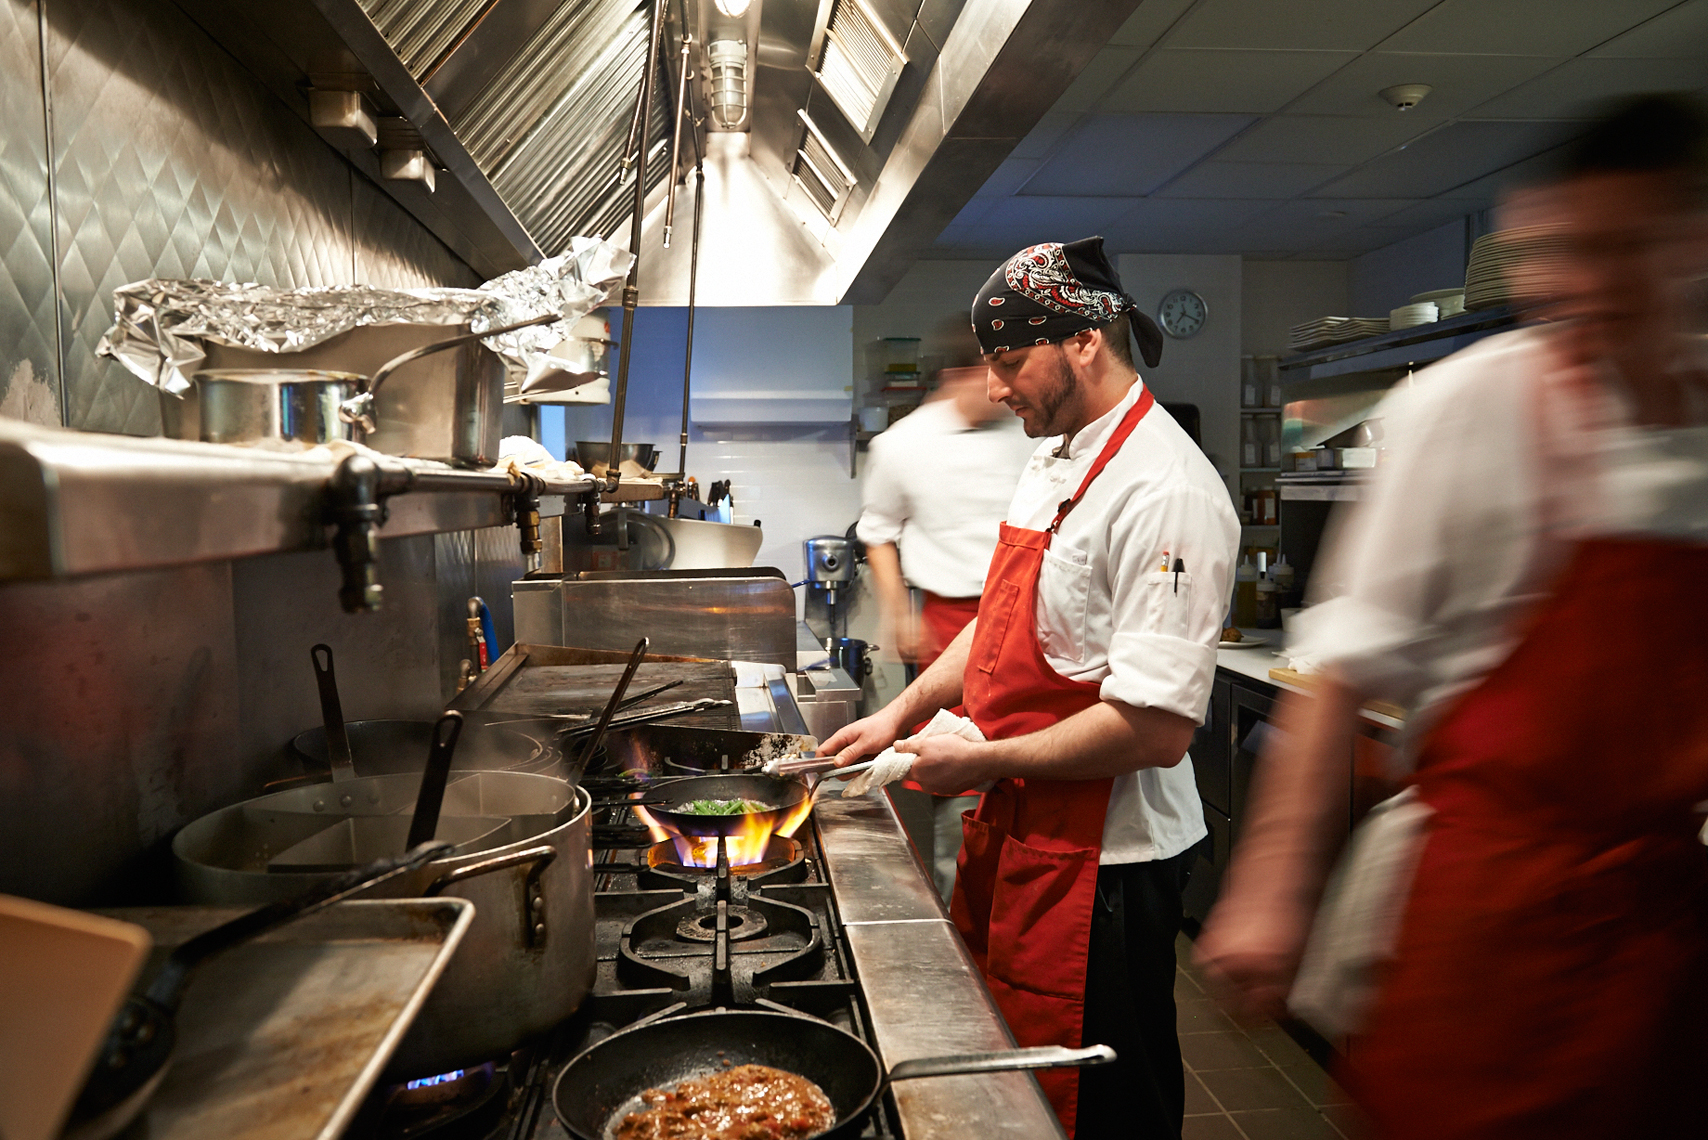 Heath_Robbins_Test_2013-05-02_Waban_Kitchen_dinner_Selects_024